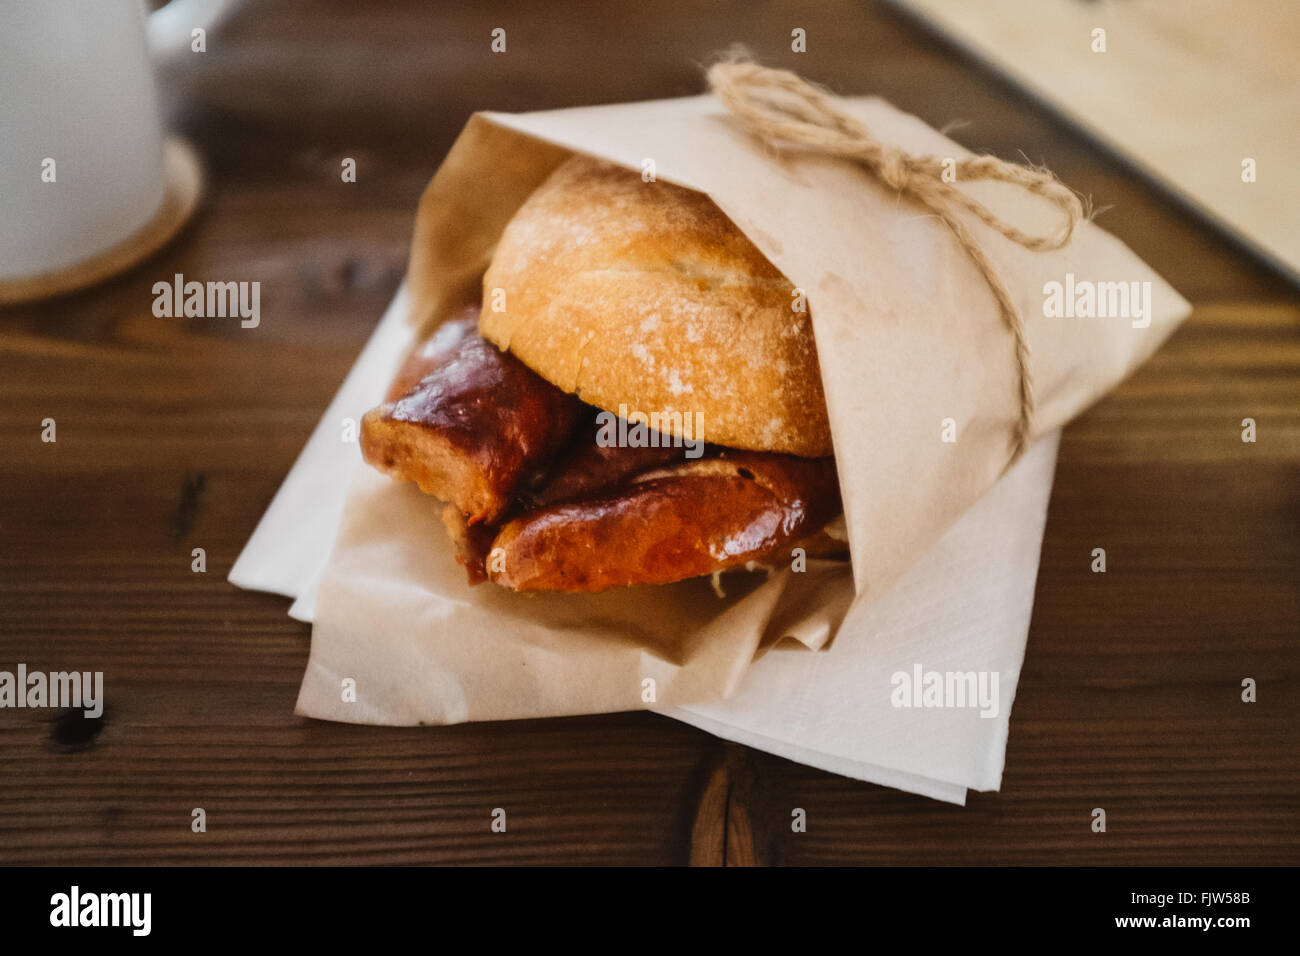 Close-Up Of Burger On Table - Stock Image